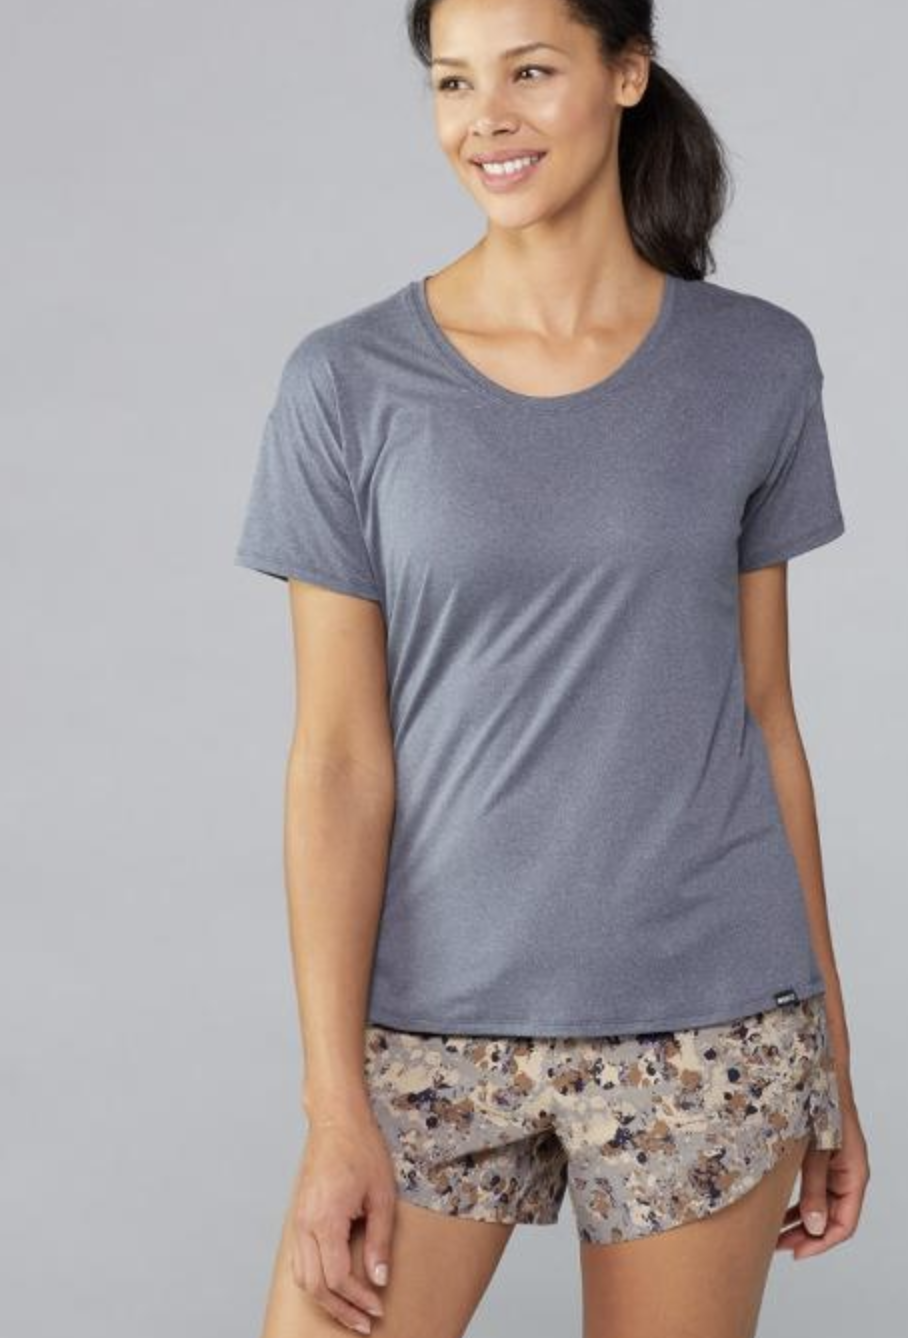 model in greyish blue round-neck tee